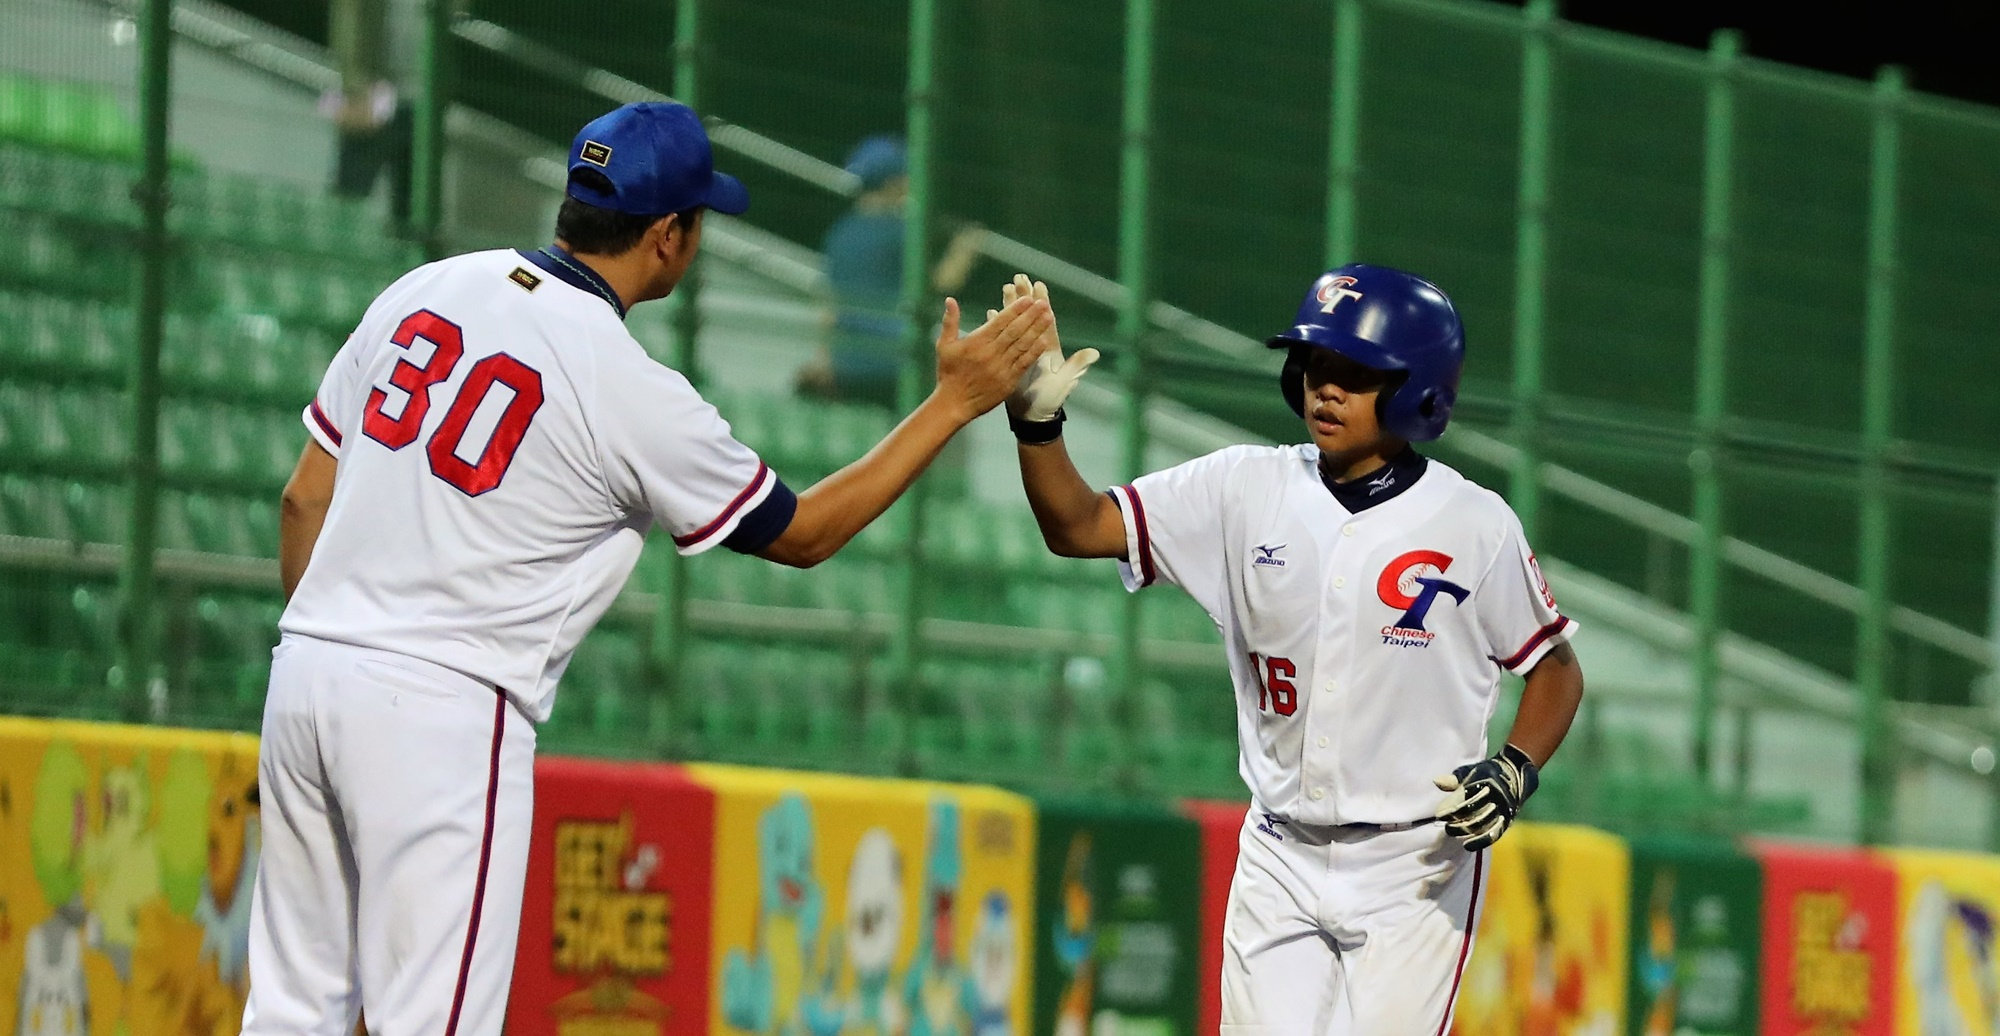 Chinese Taipei scored 27 runs in the first inning only